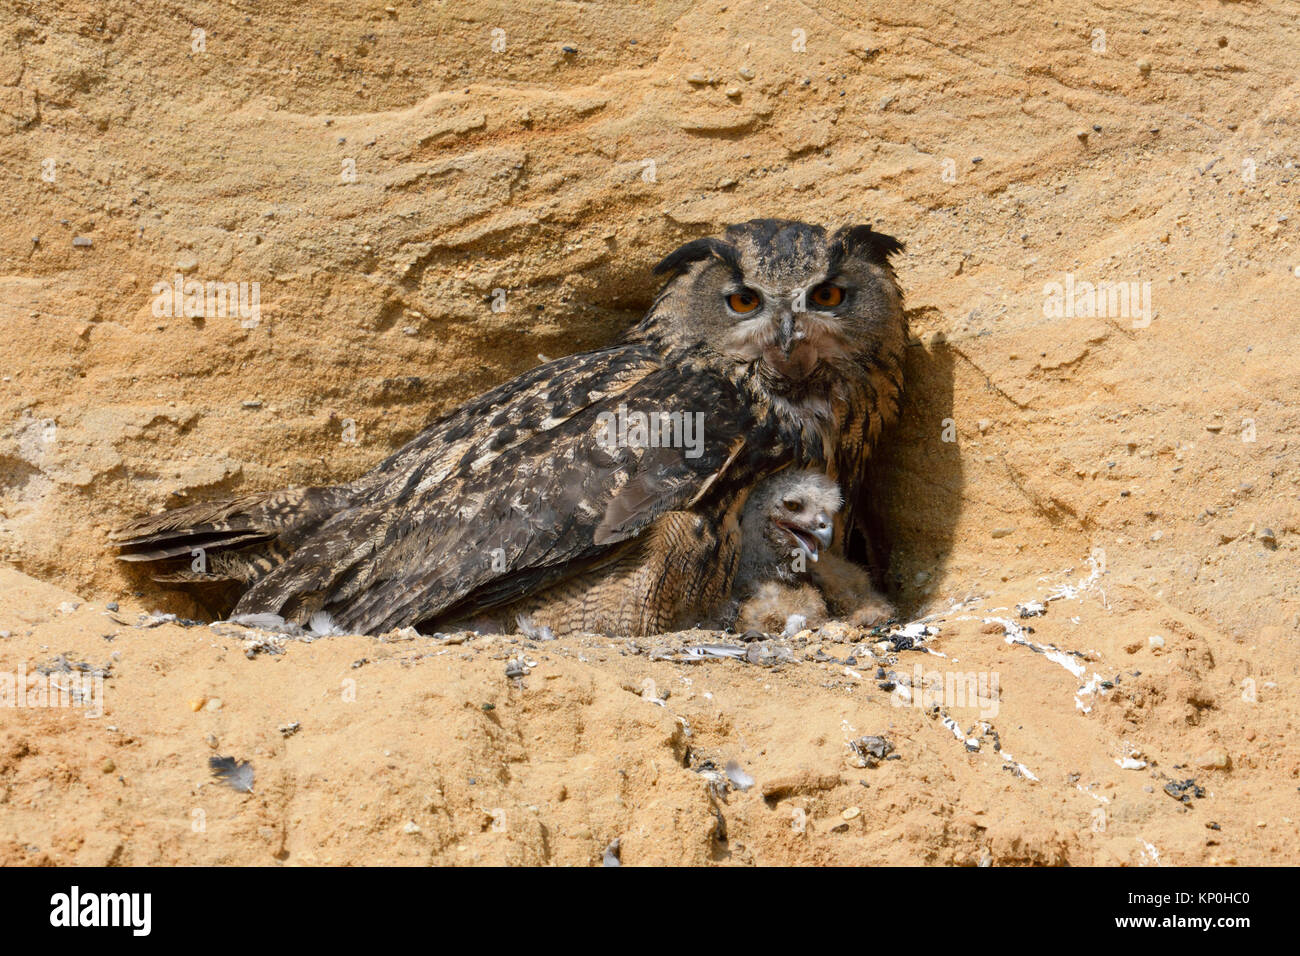 Eurasian Eagle Owl / Europaeischer Uhu ( Bubo bubo ), breeding site, adult gathering its chicks, in a sand pit, - Stock Image